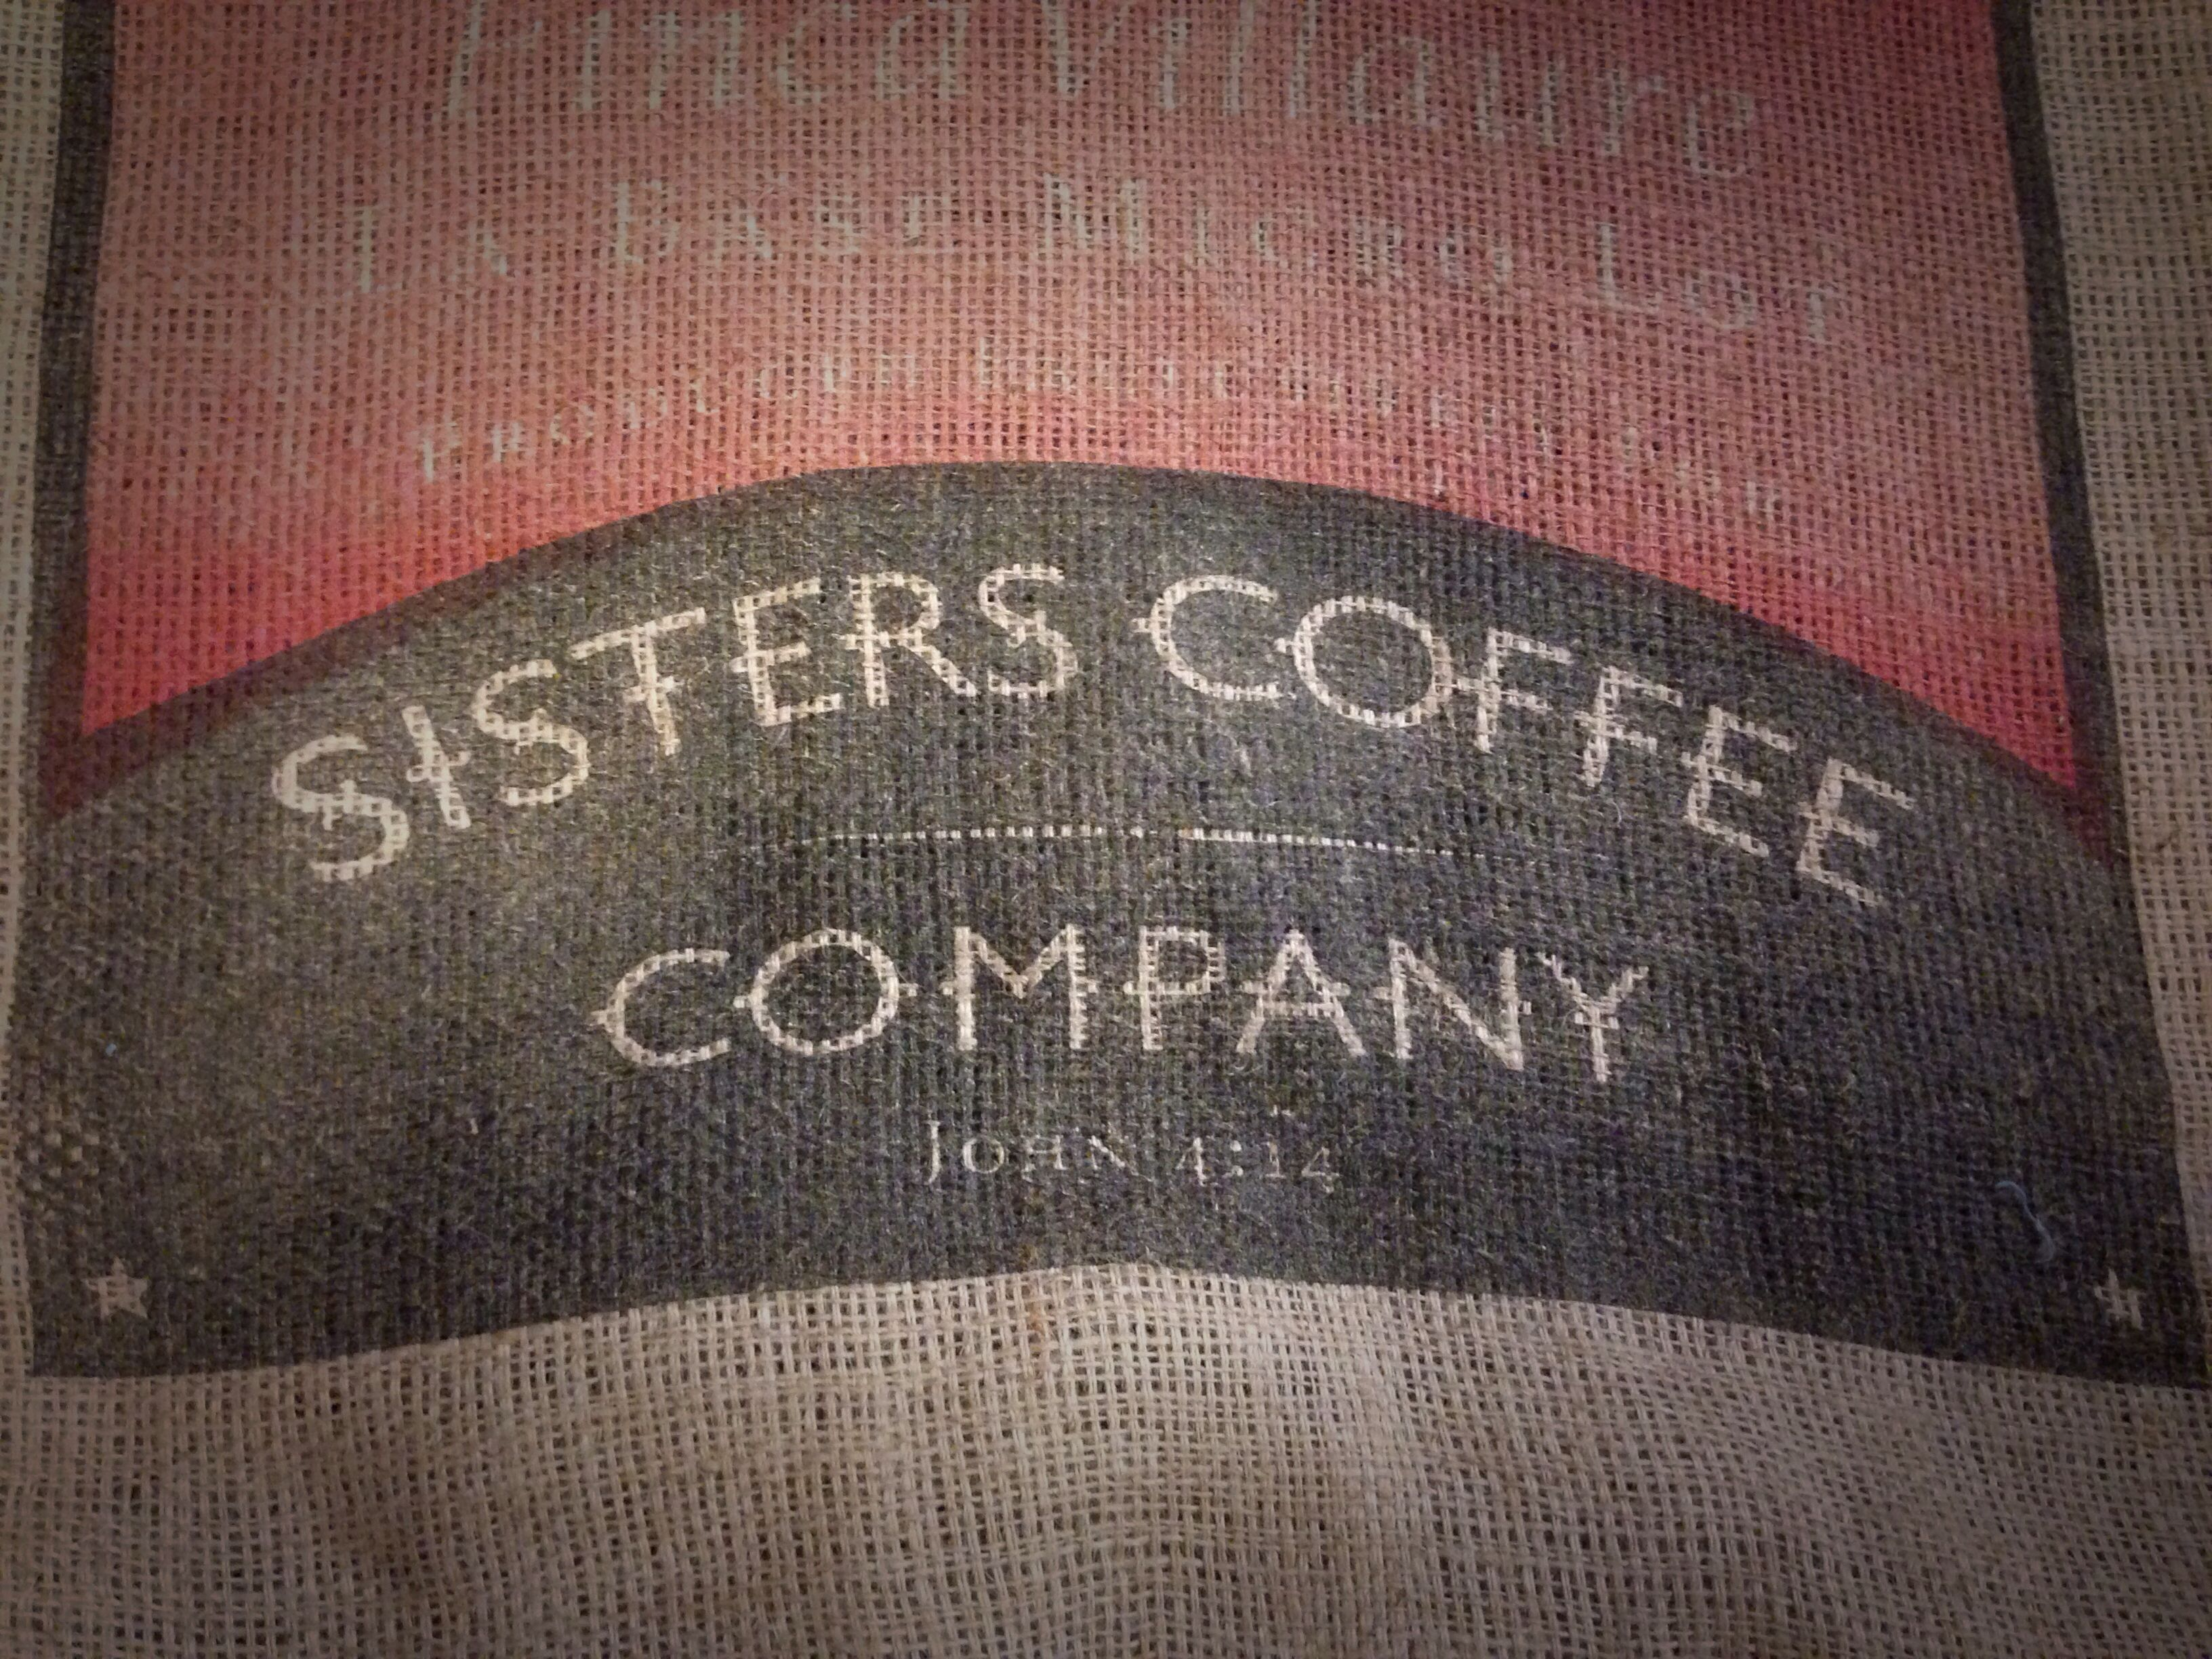 Been searching for this one ... finally found my favorite coffee shop's burlap sack. Sisters Coffee ... Yum!